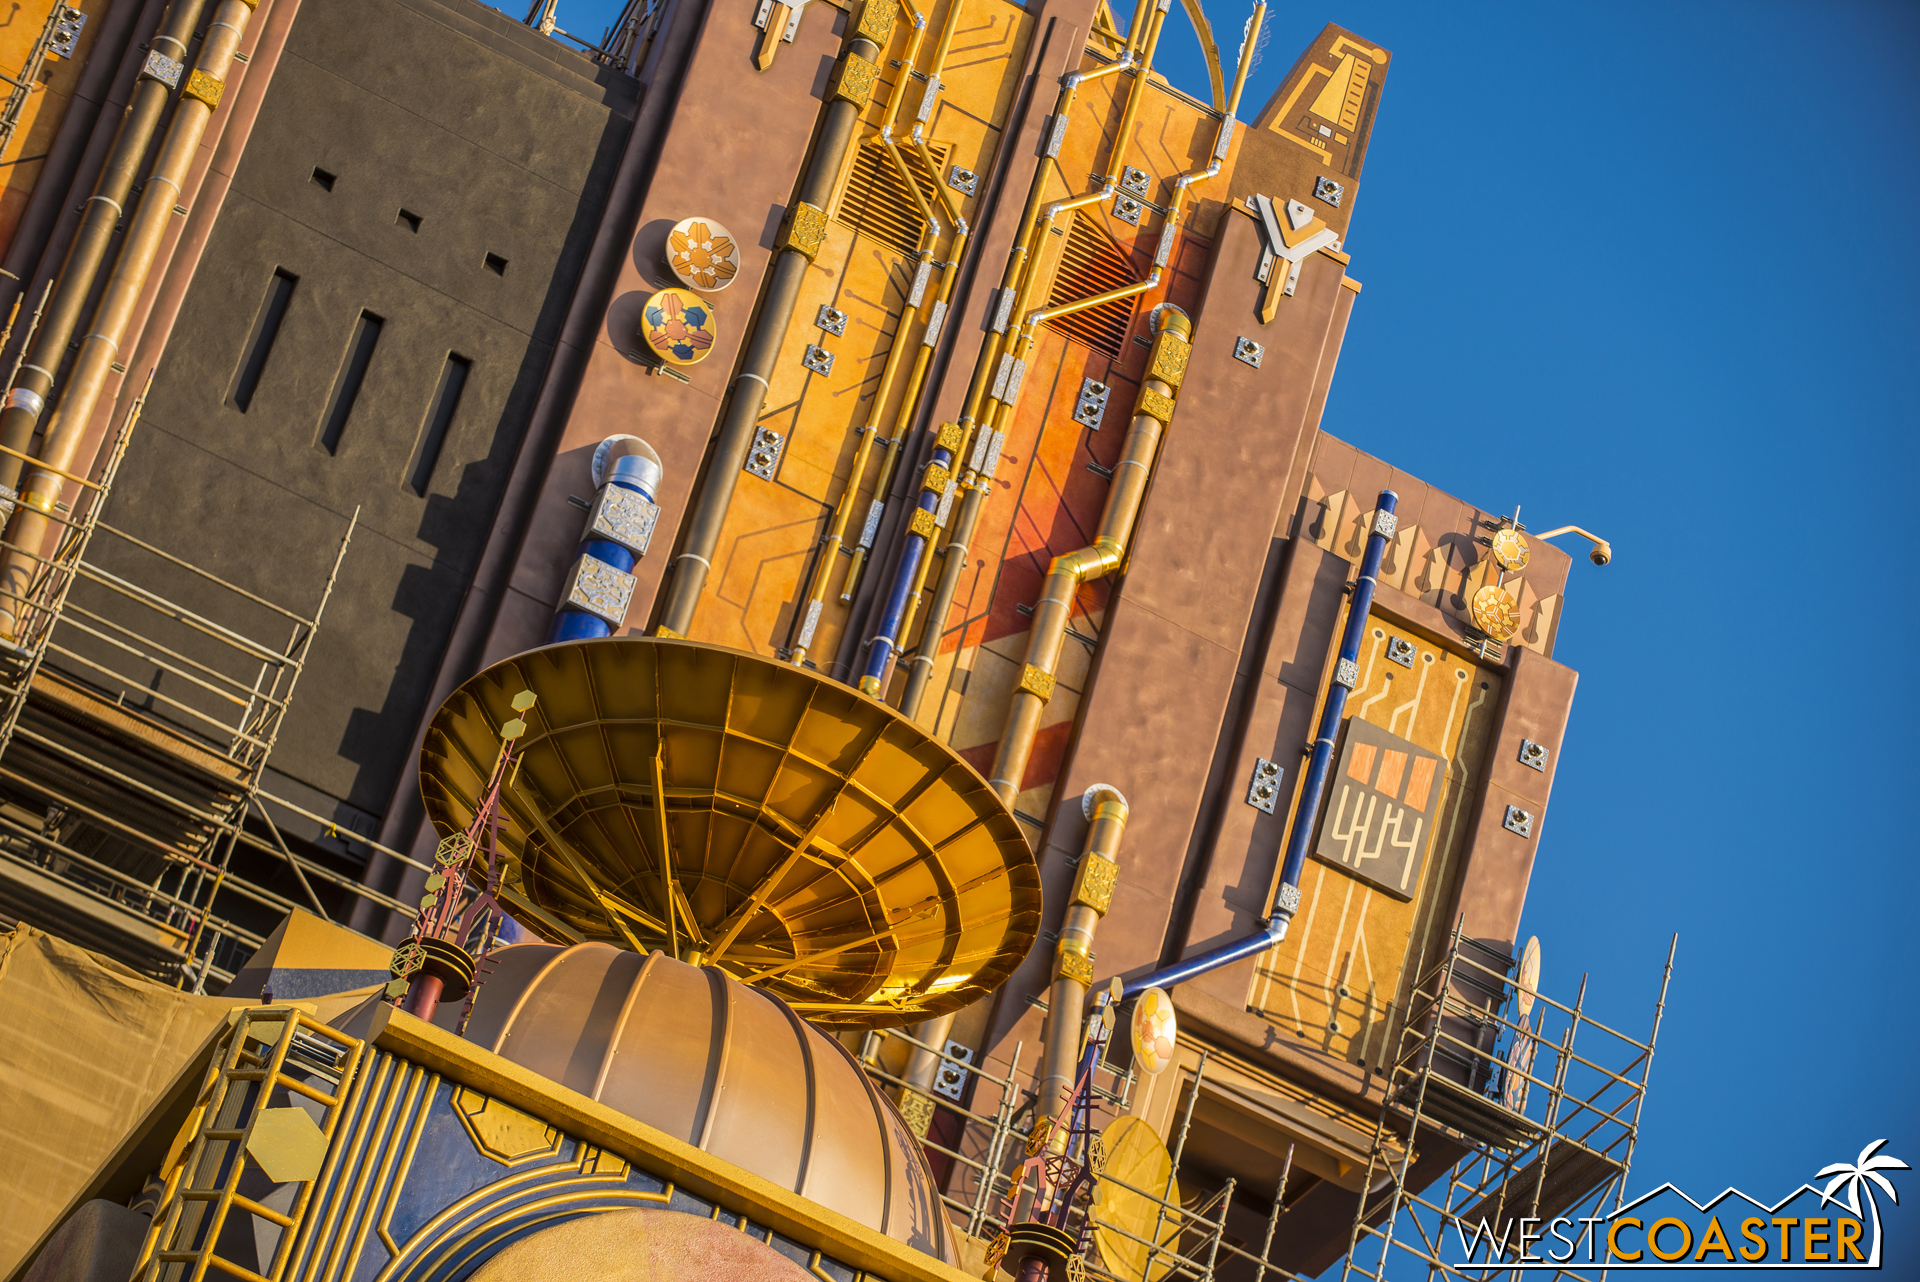 If this was Tomorrowland. Or maybe Tokyo Disney Sea's Port Discovery.